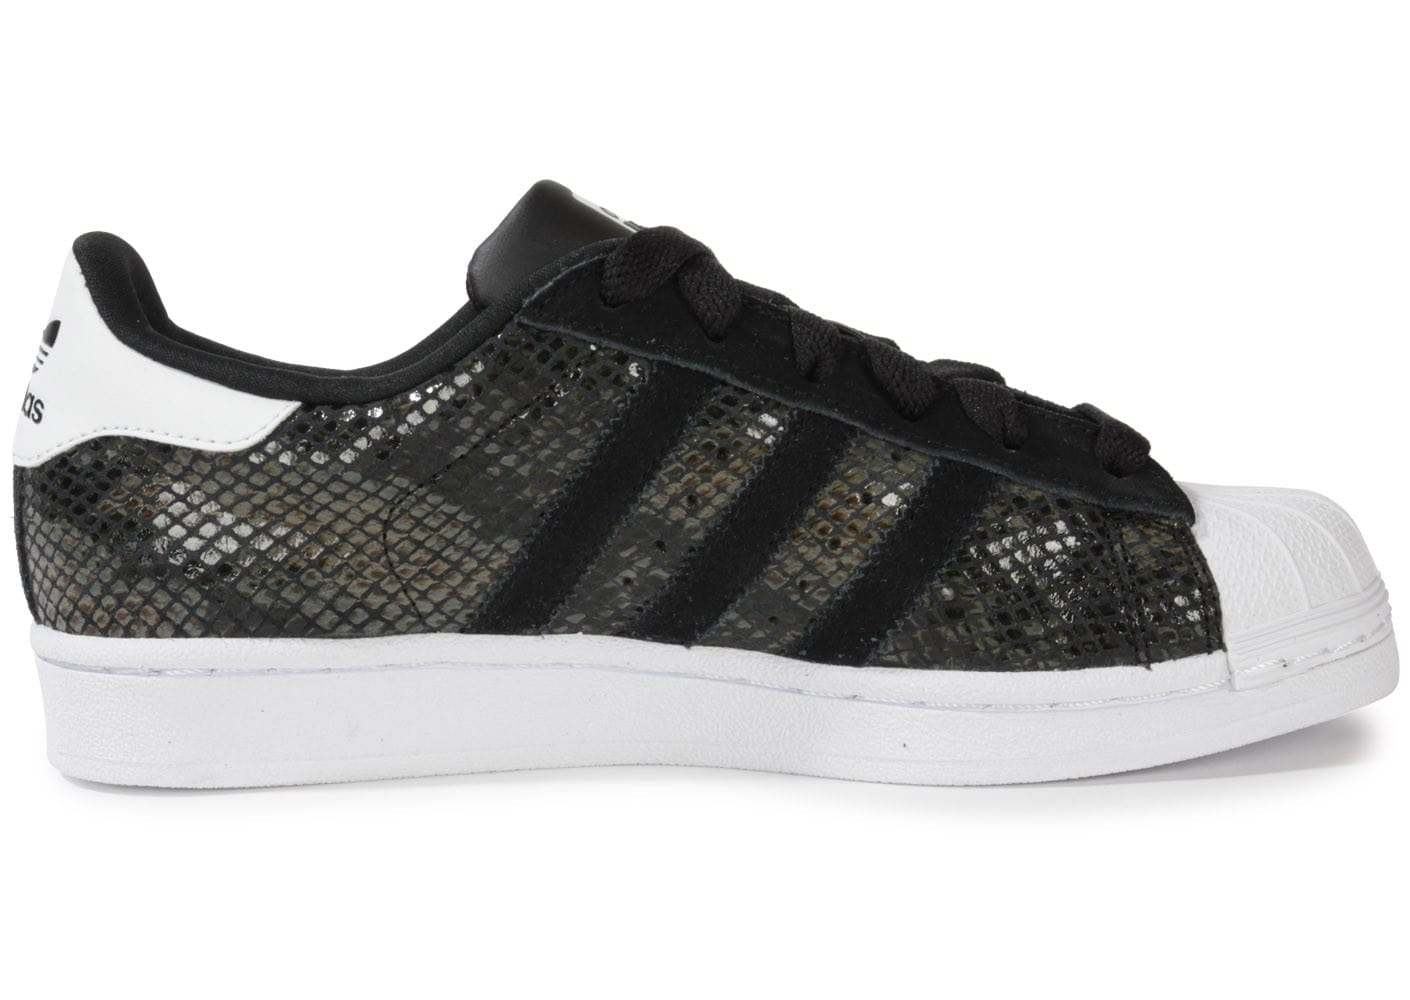 adidas superstar femme python. Black Bedroom Furniture Sets. Home Design Ideas